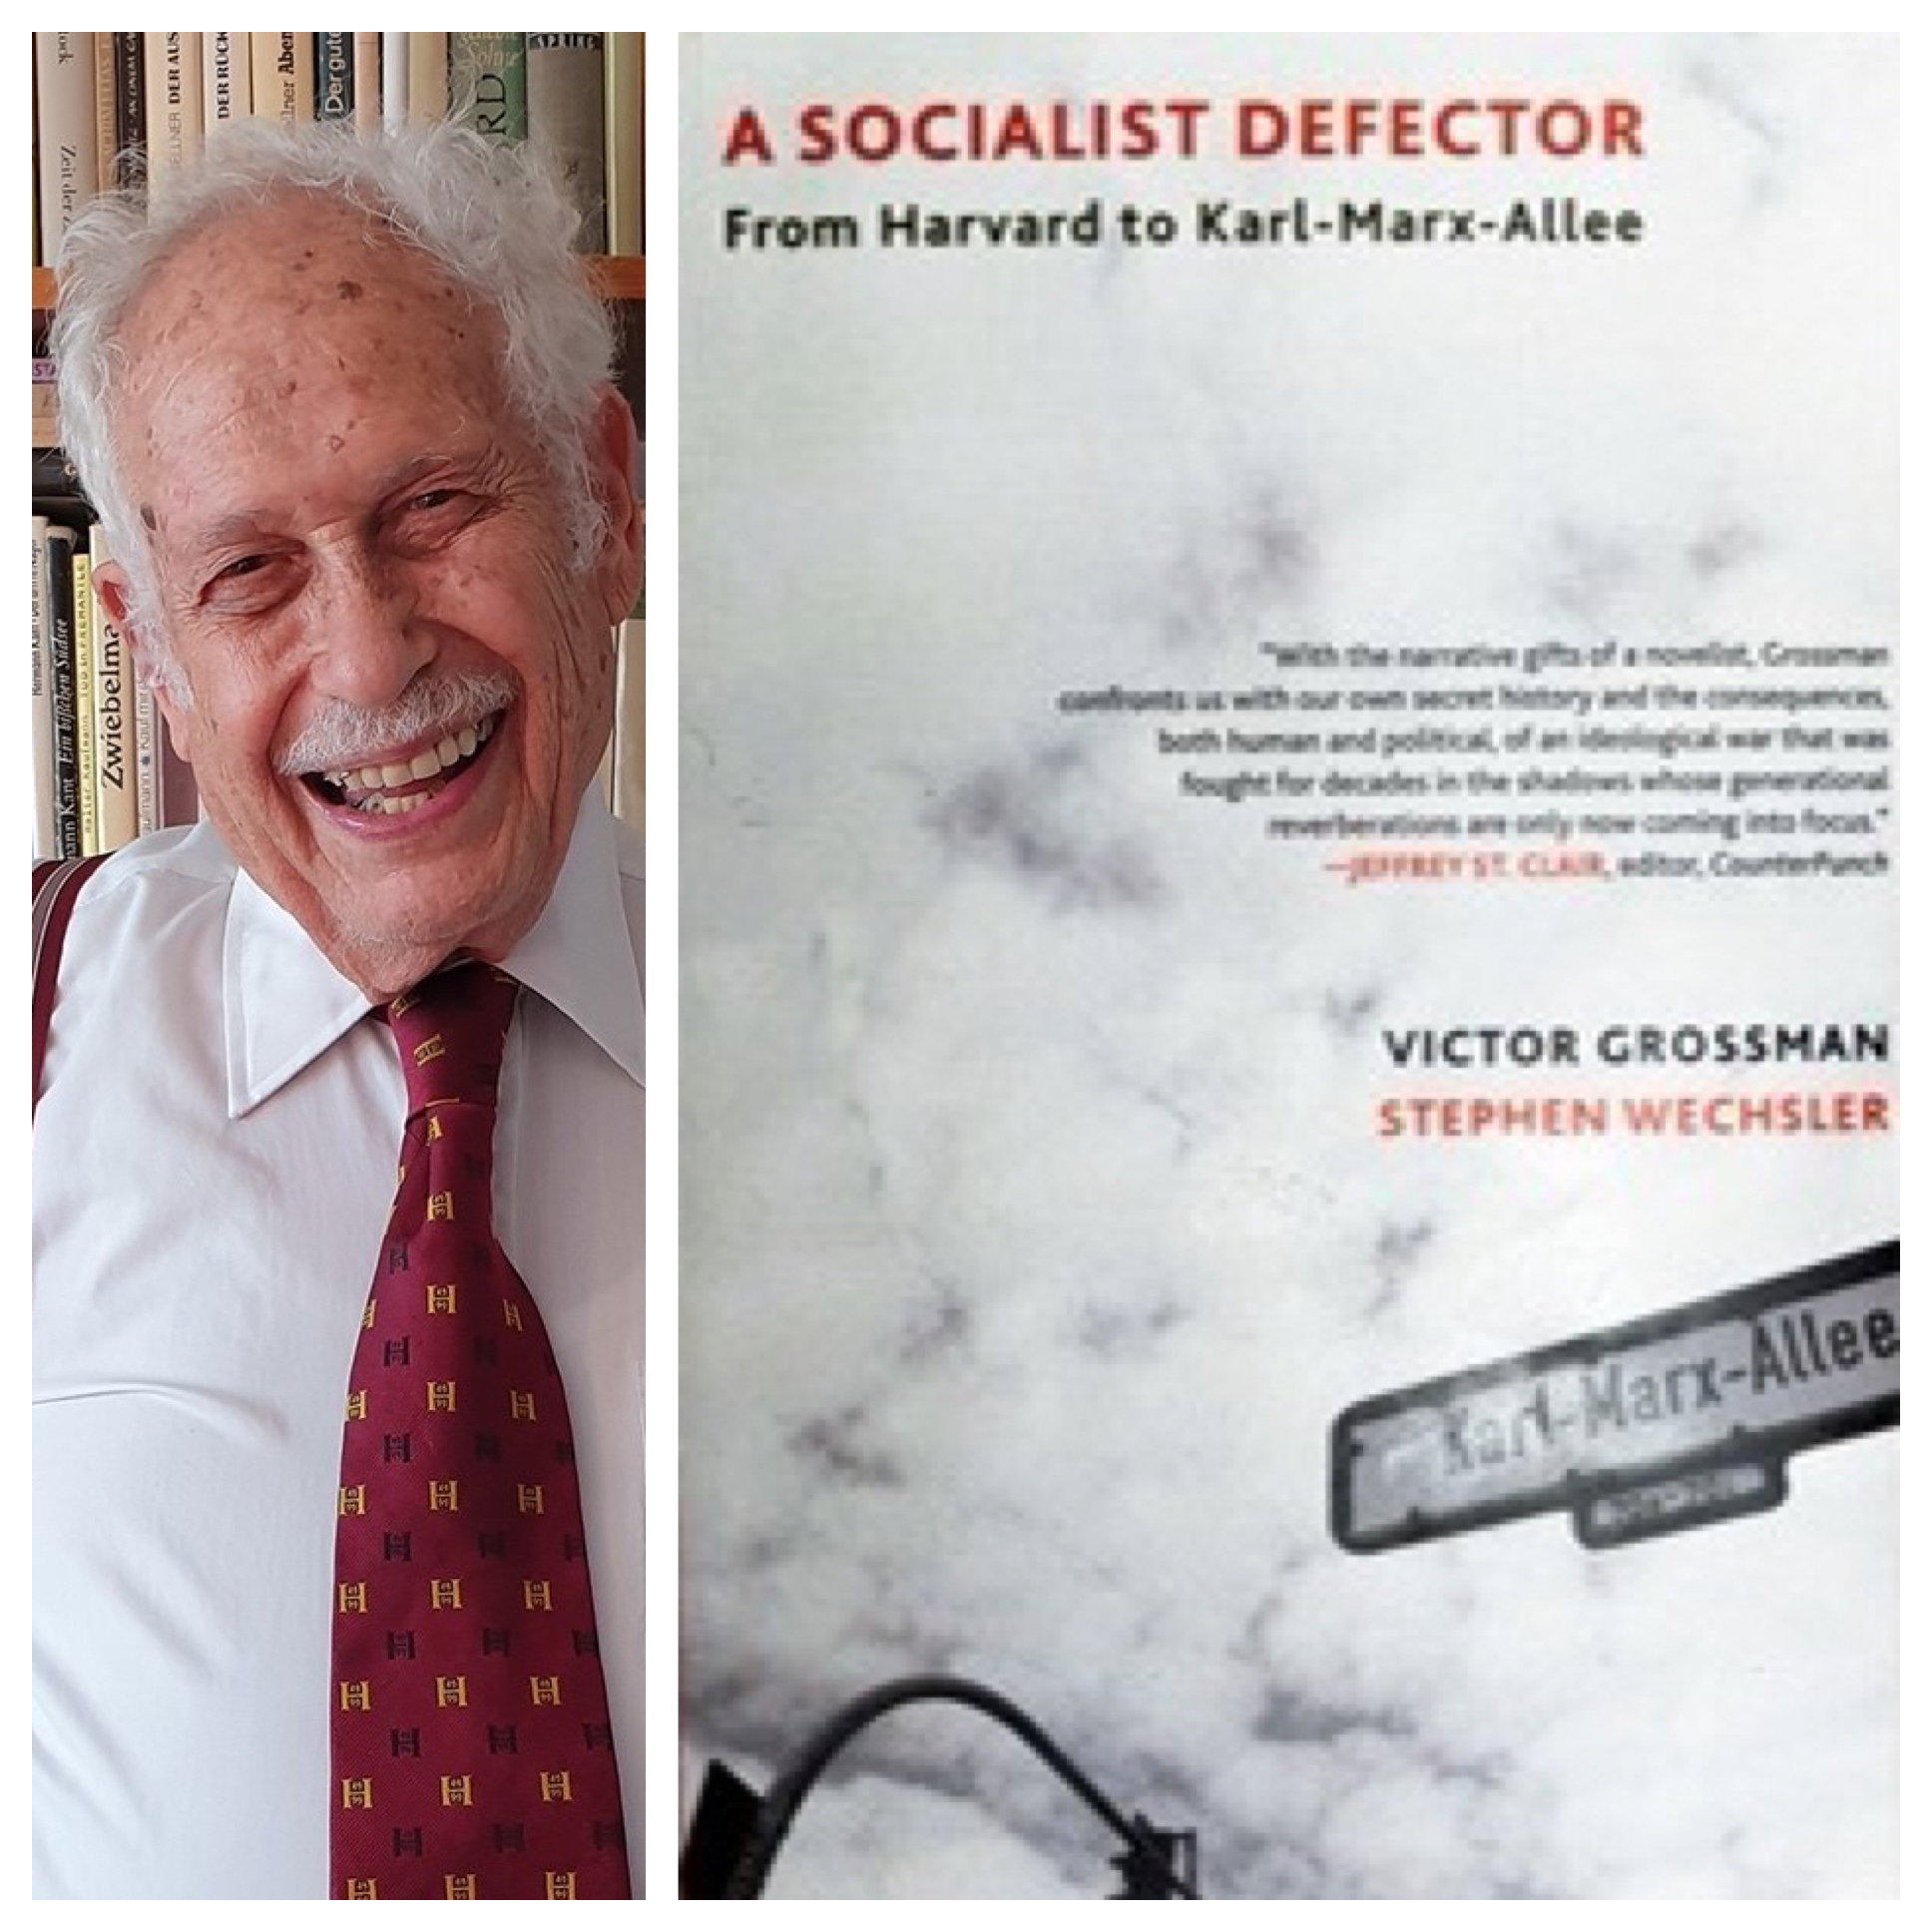 This week on Voices Radio; Eric and Channing are in conversation with Victor Grossman: A Socialist Defector and author, living in Germany